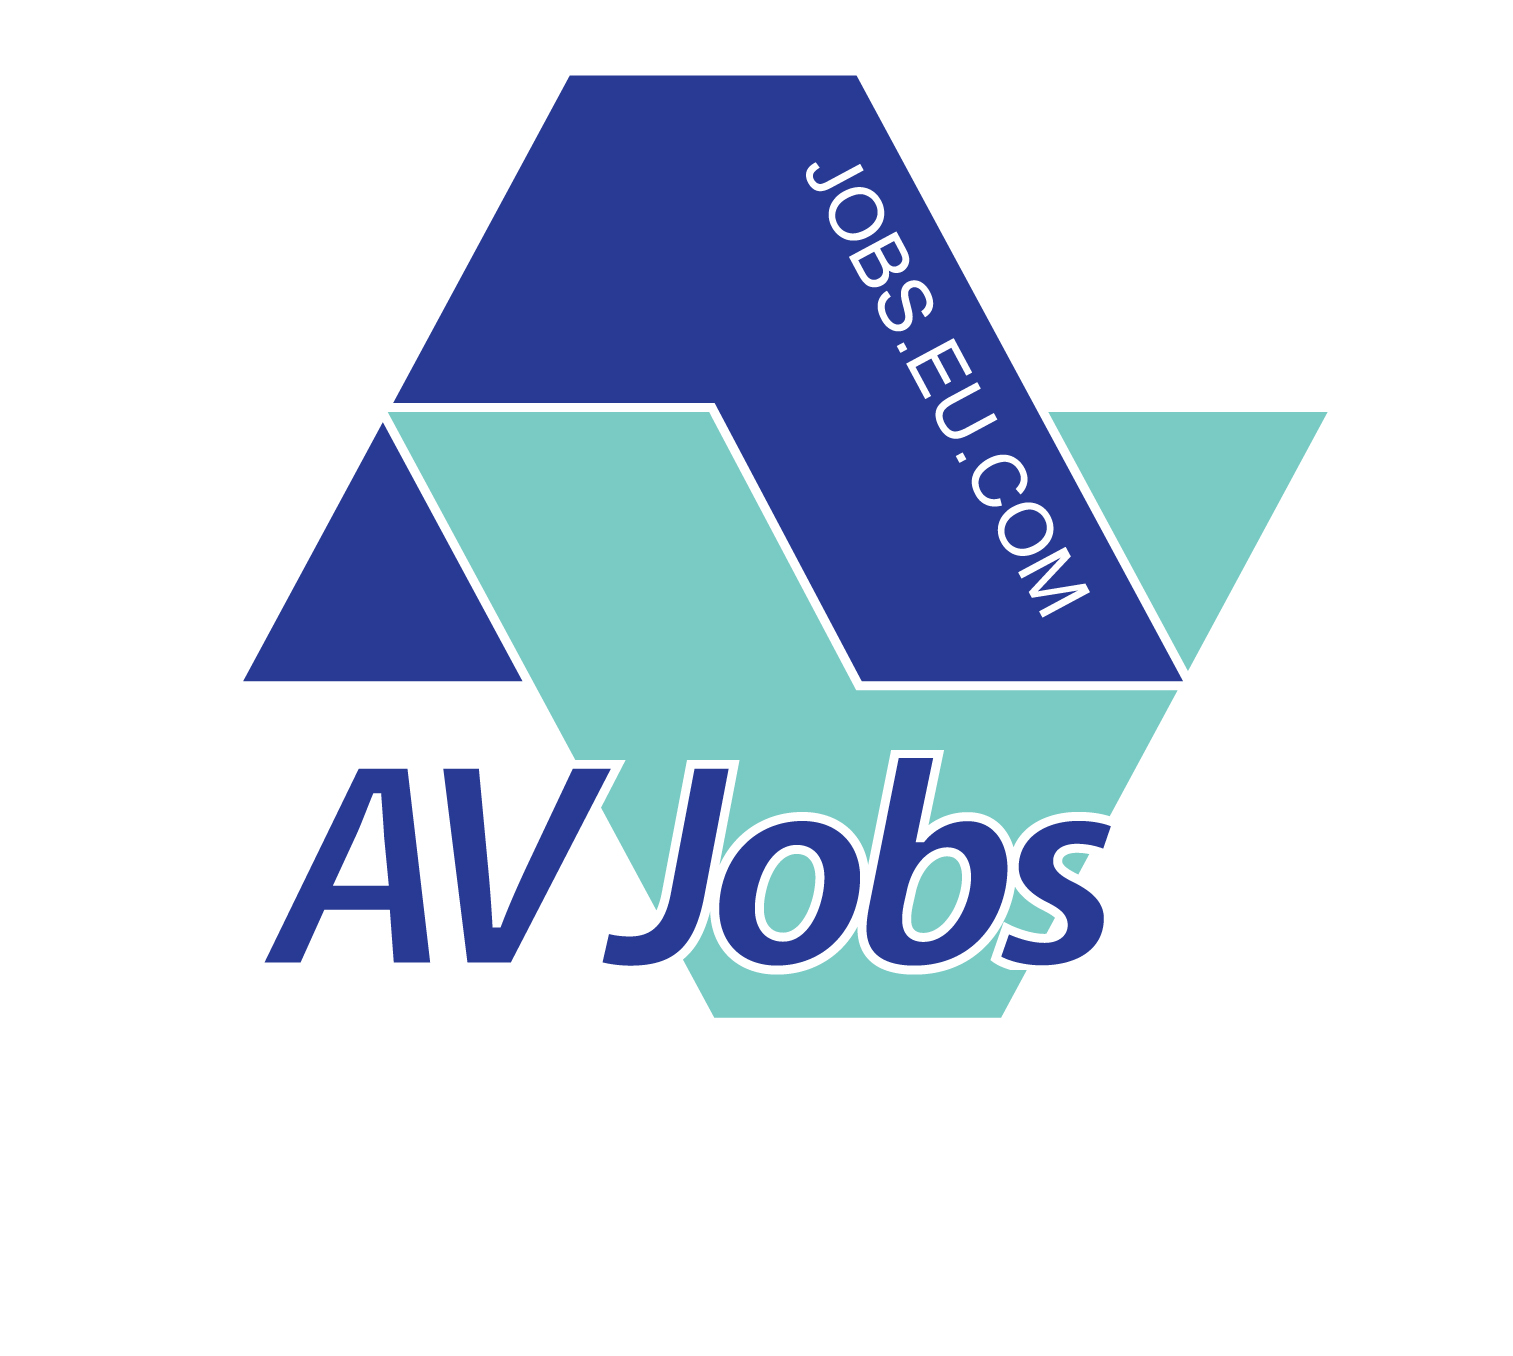 Elementary Resources Ltd, T/A AV Jobs